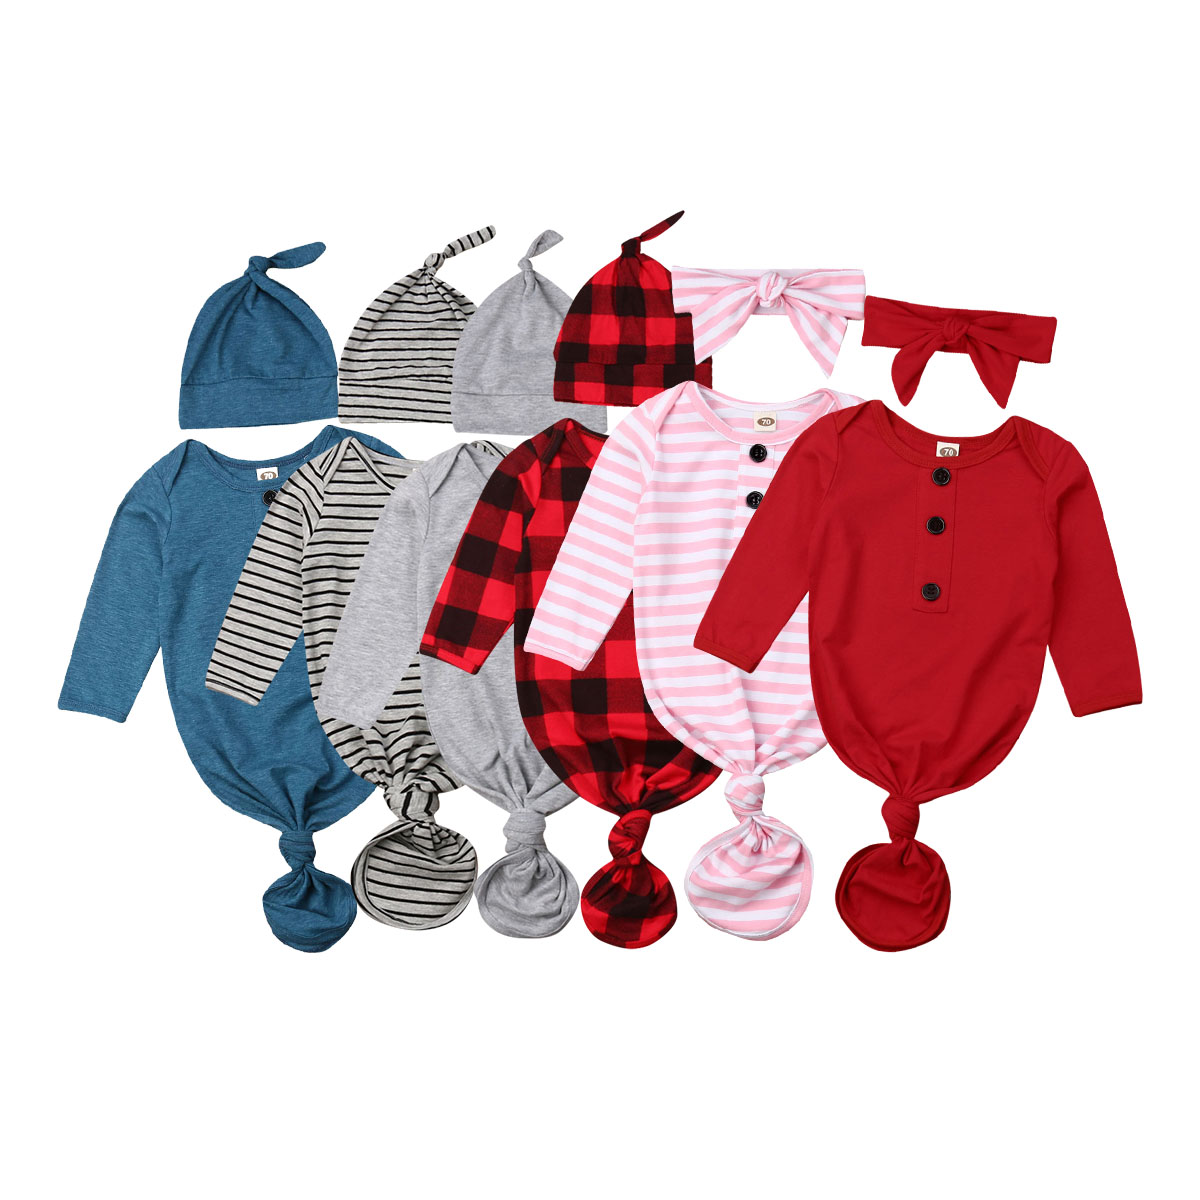 2pcs Toddle Baby Striped Red Plaid Brief Soft Infant Swaddle Muslin Blanket Newborn Baby Wrap Swaddling Blanket Sleeper